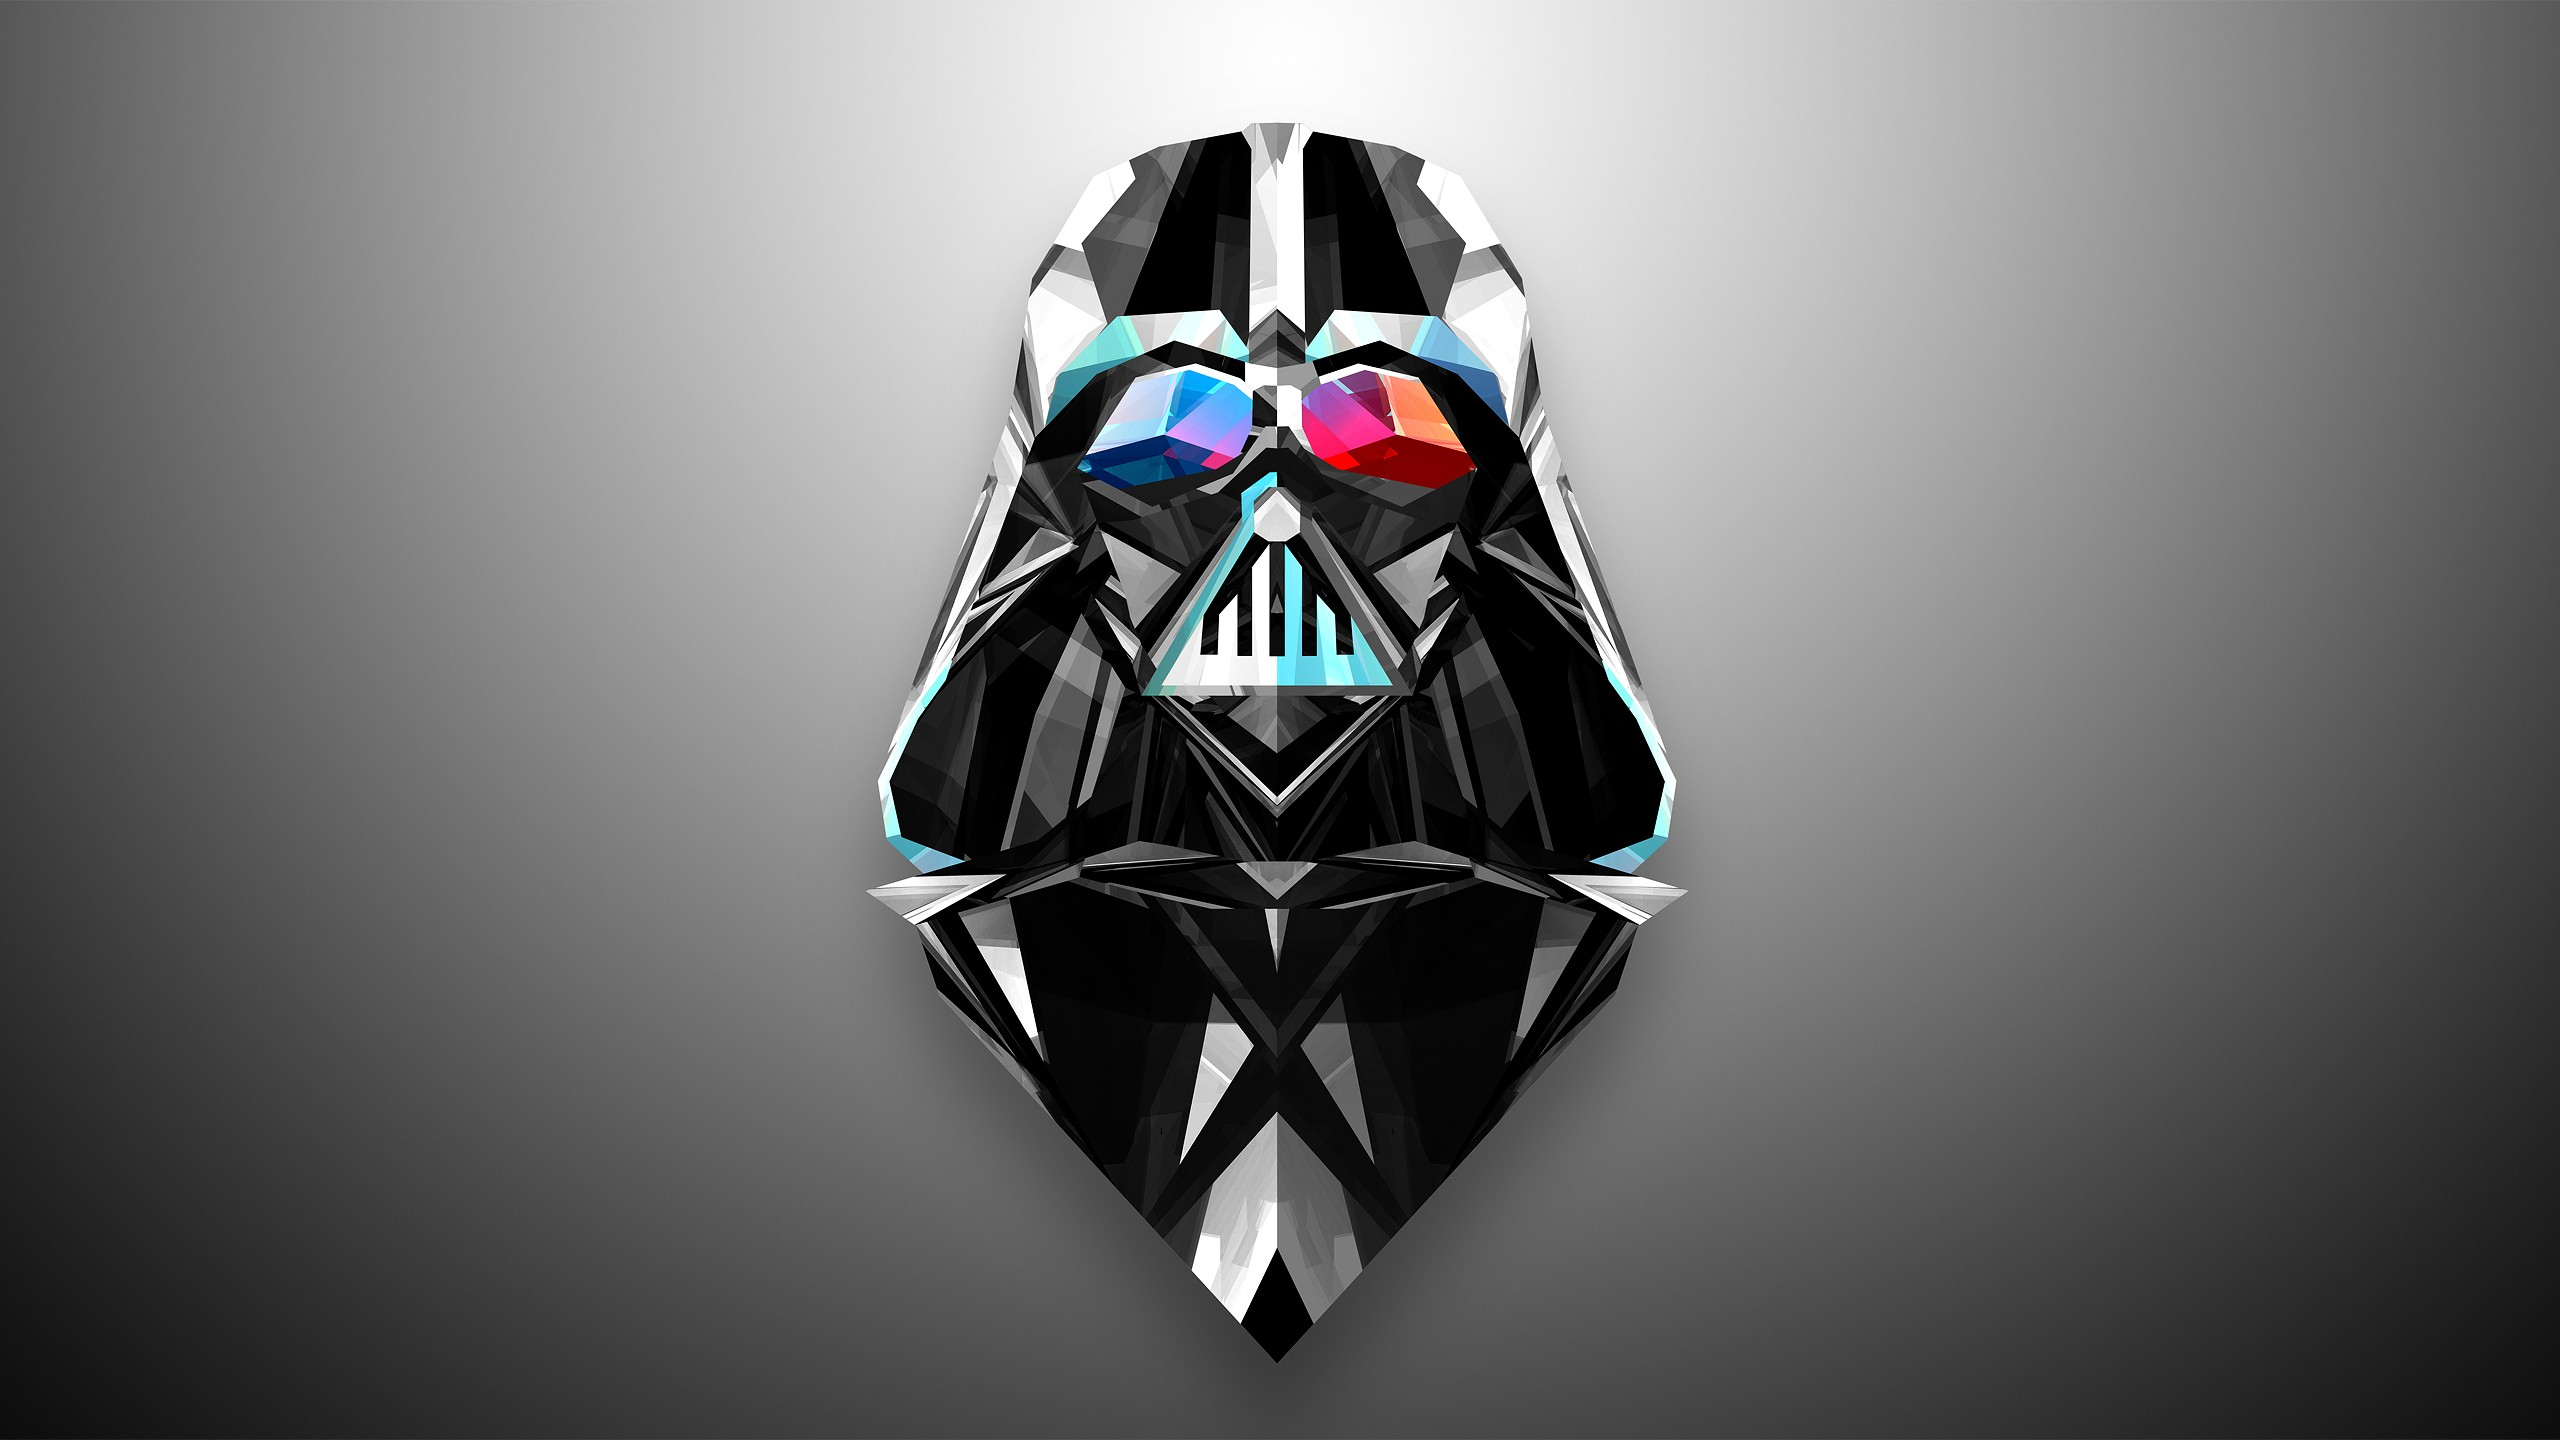 Cute Lock Screens 879116 further Star Wars Hd Wallpaper furthermore Kanye West Makes Perfect Iphone Lock Screen together with 5207355798627900 also Geeky And Funny Wallpaper Collocation. on funny iphone lock screen wallpapers